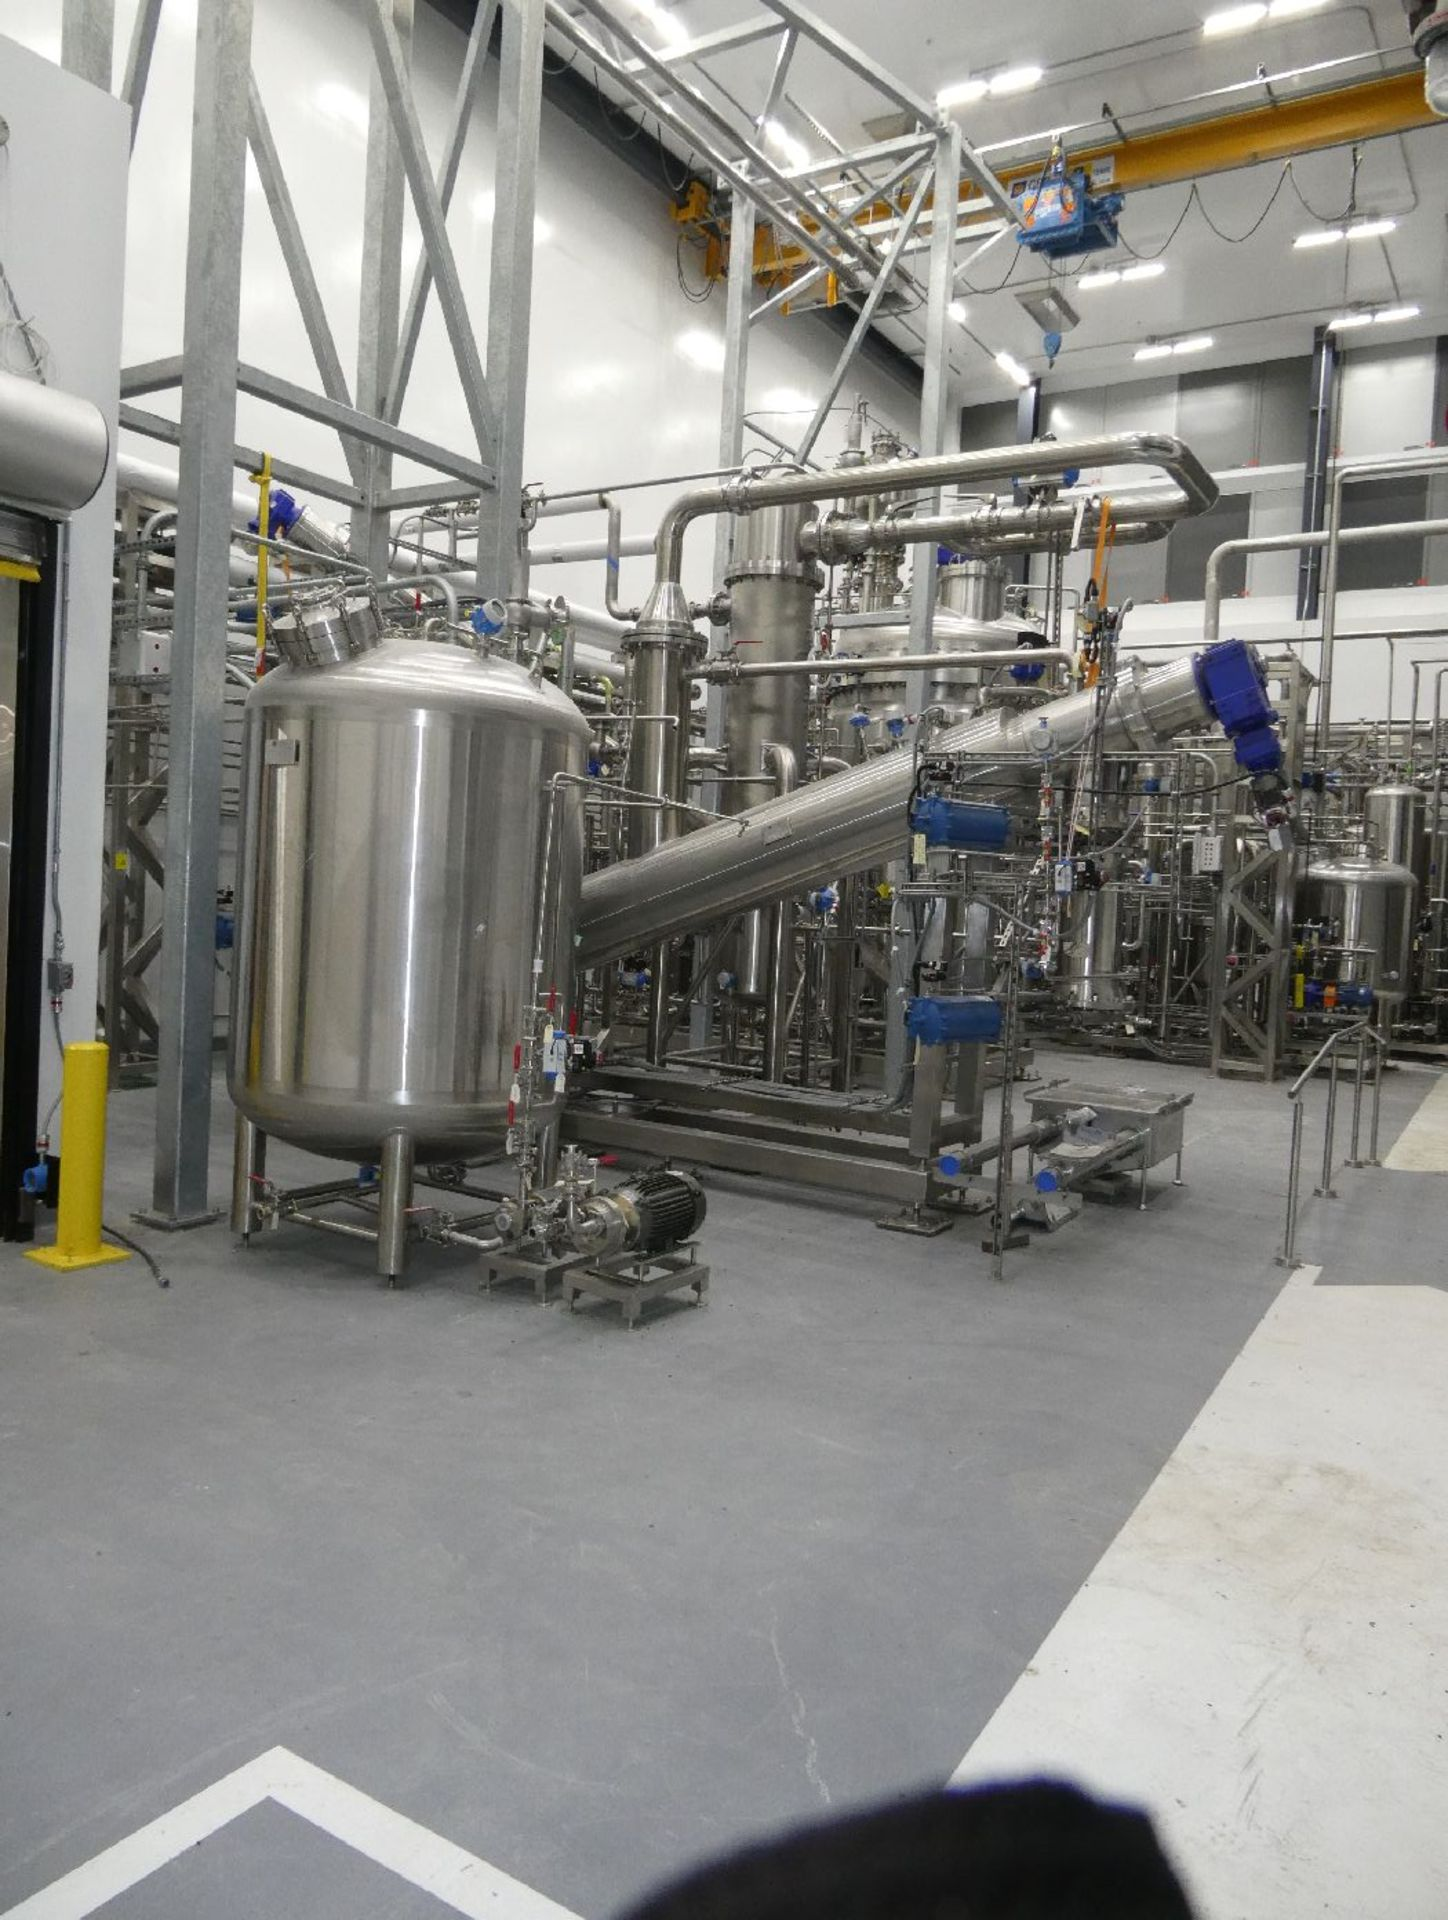 ROTAX Closed Loop Solvent Based Continuous Oil Extraction System